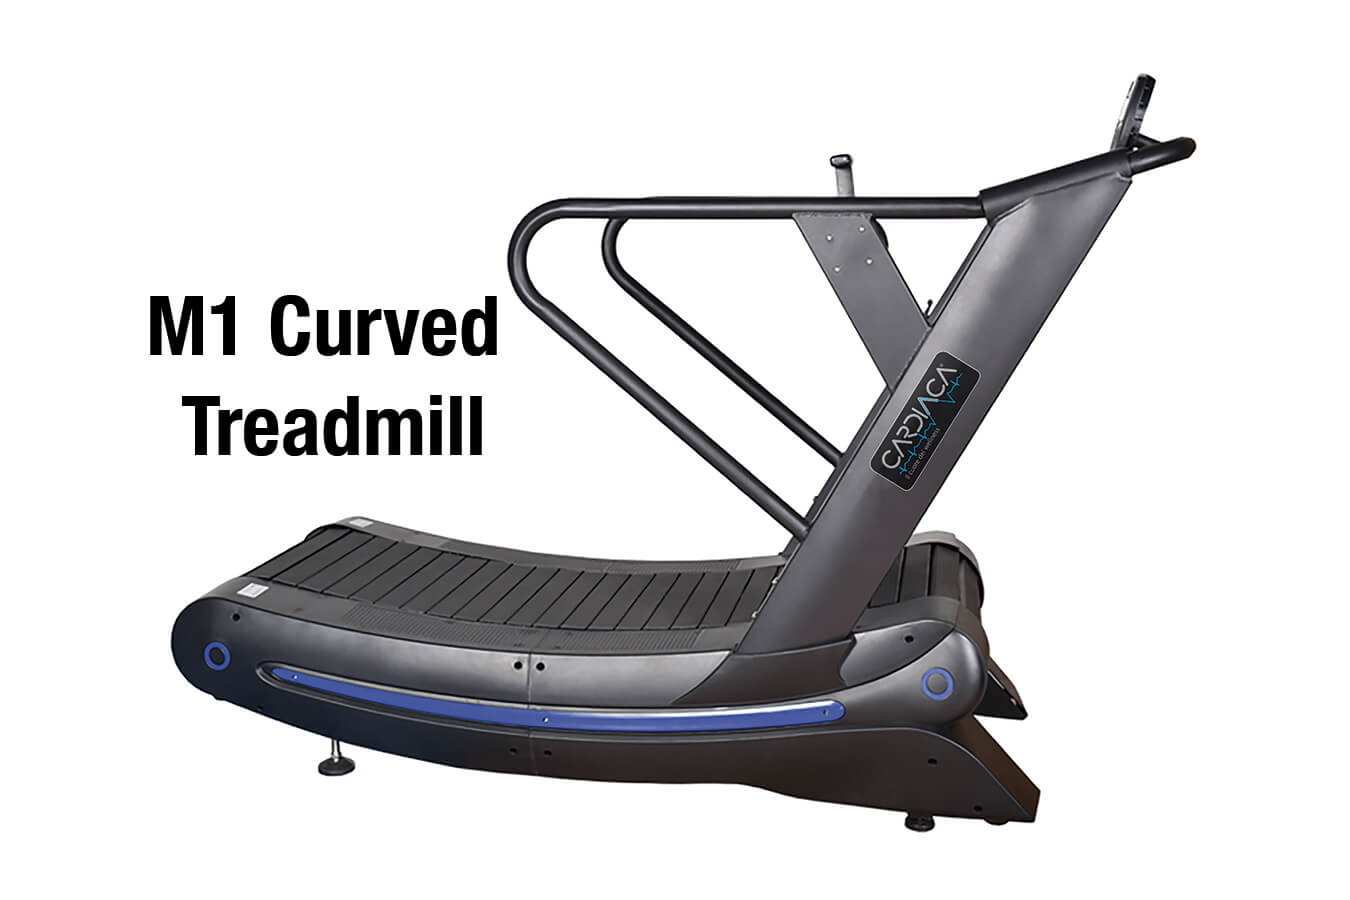 M1 Curved Treadmill